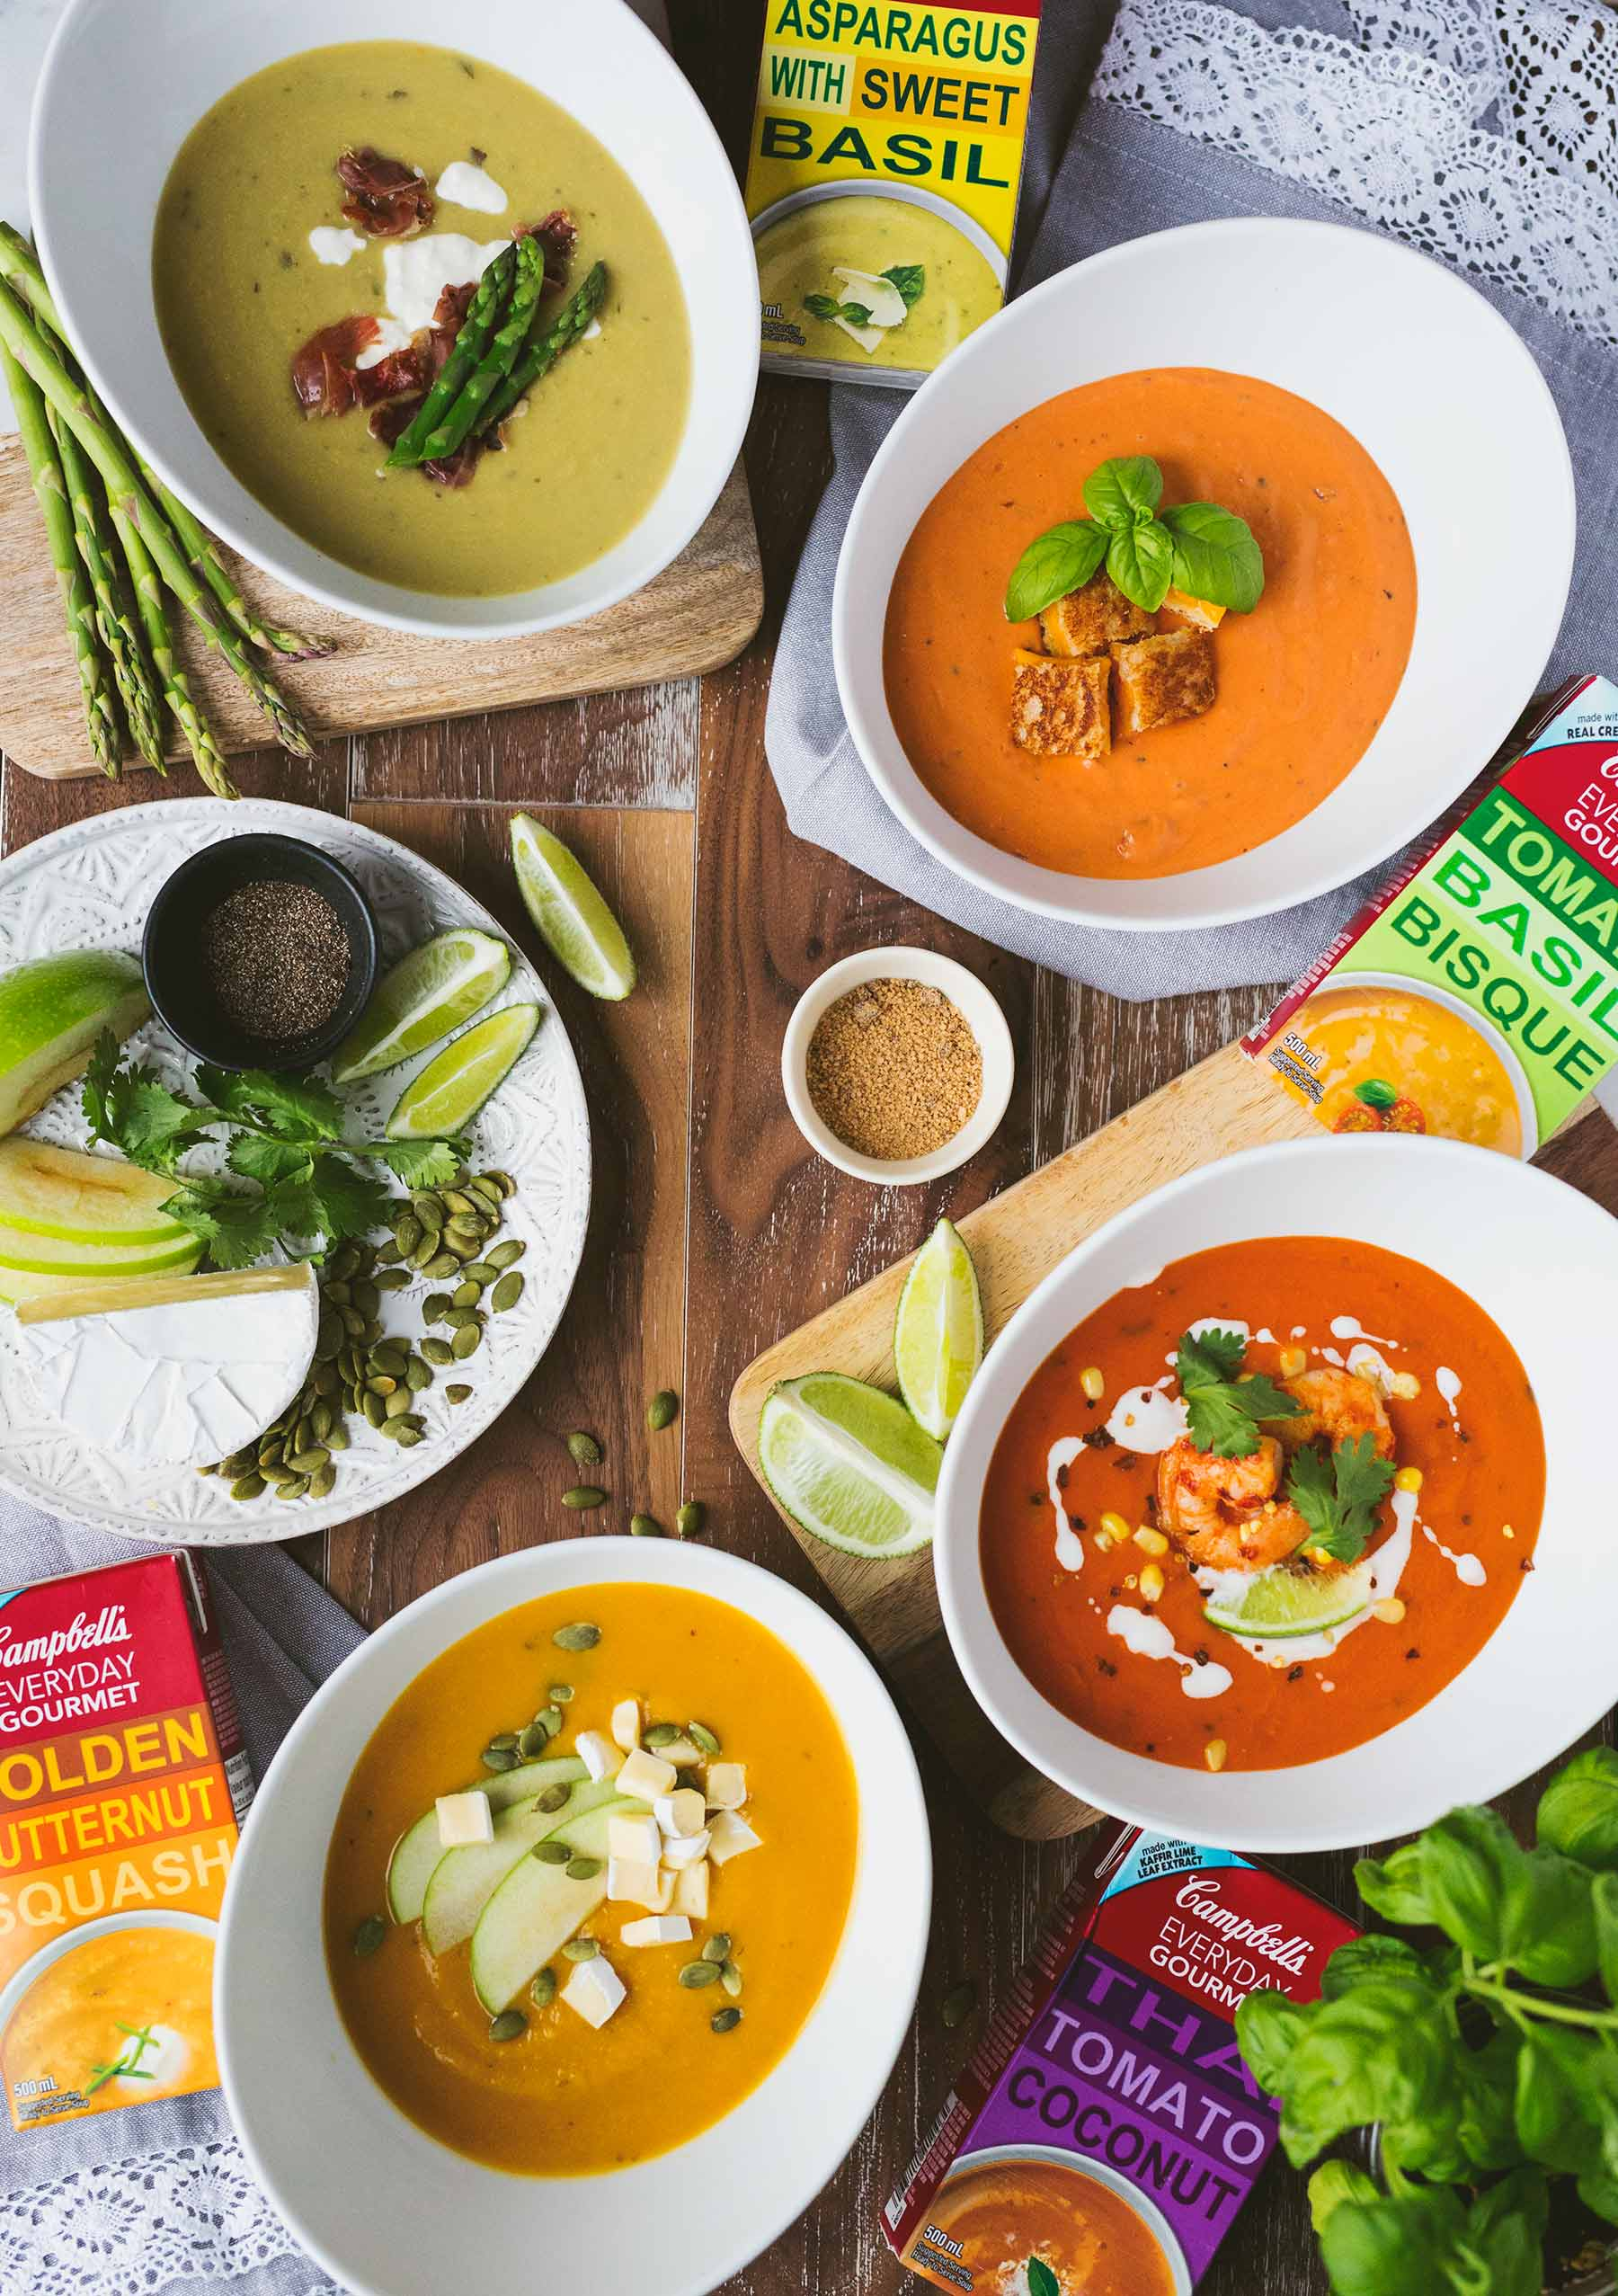 Campbell's Everyday Gourmet Soup Cartons